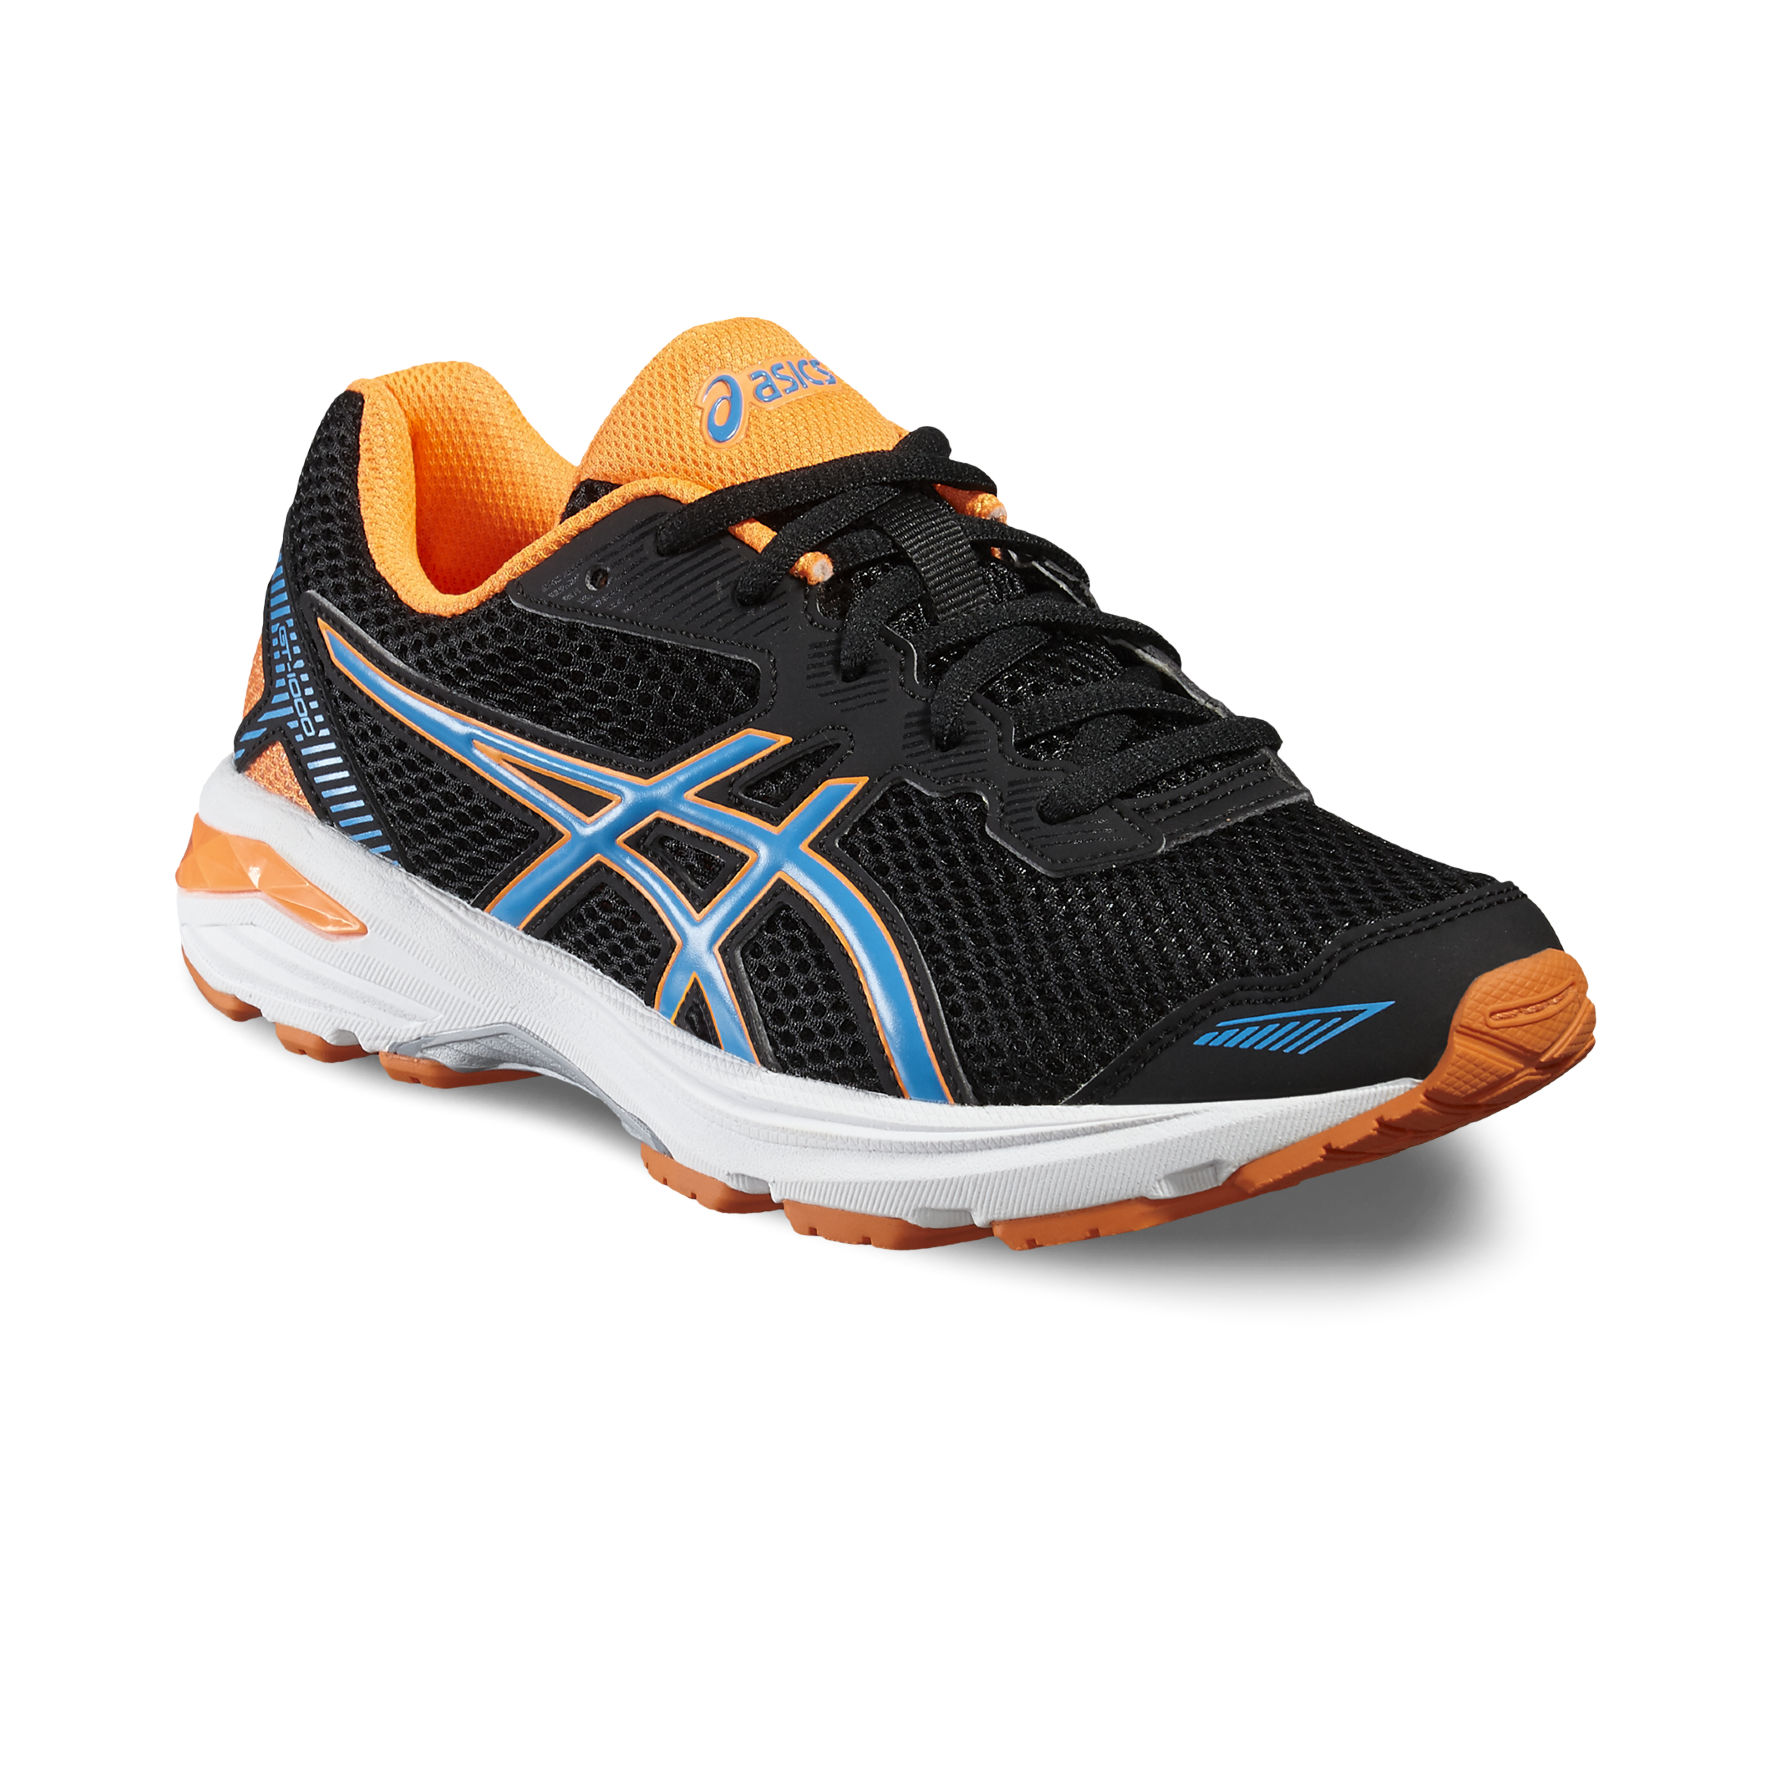 Asics GT 1000 5 GS in Schwarz Orange